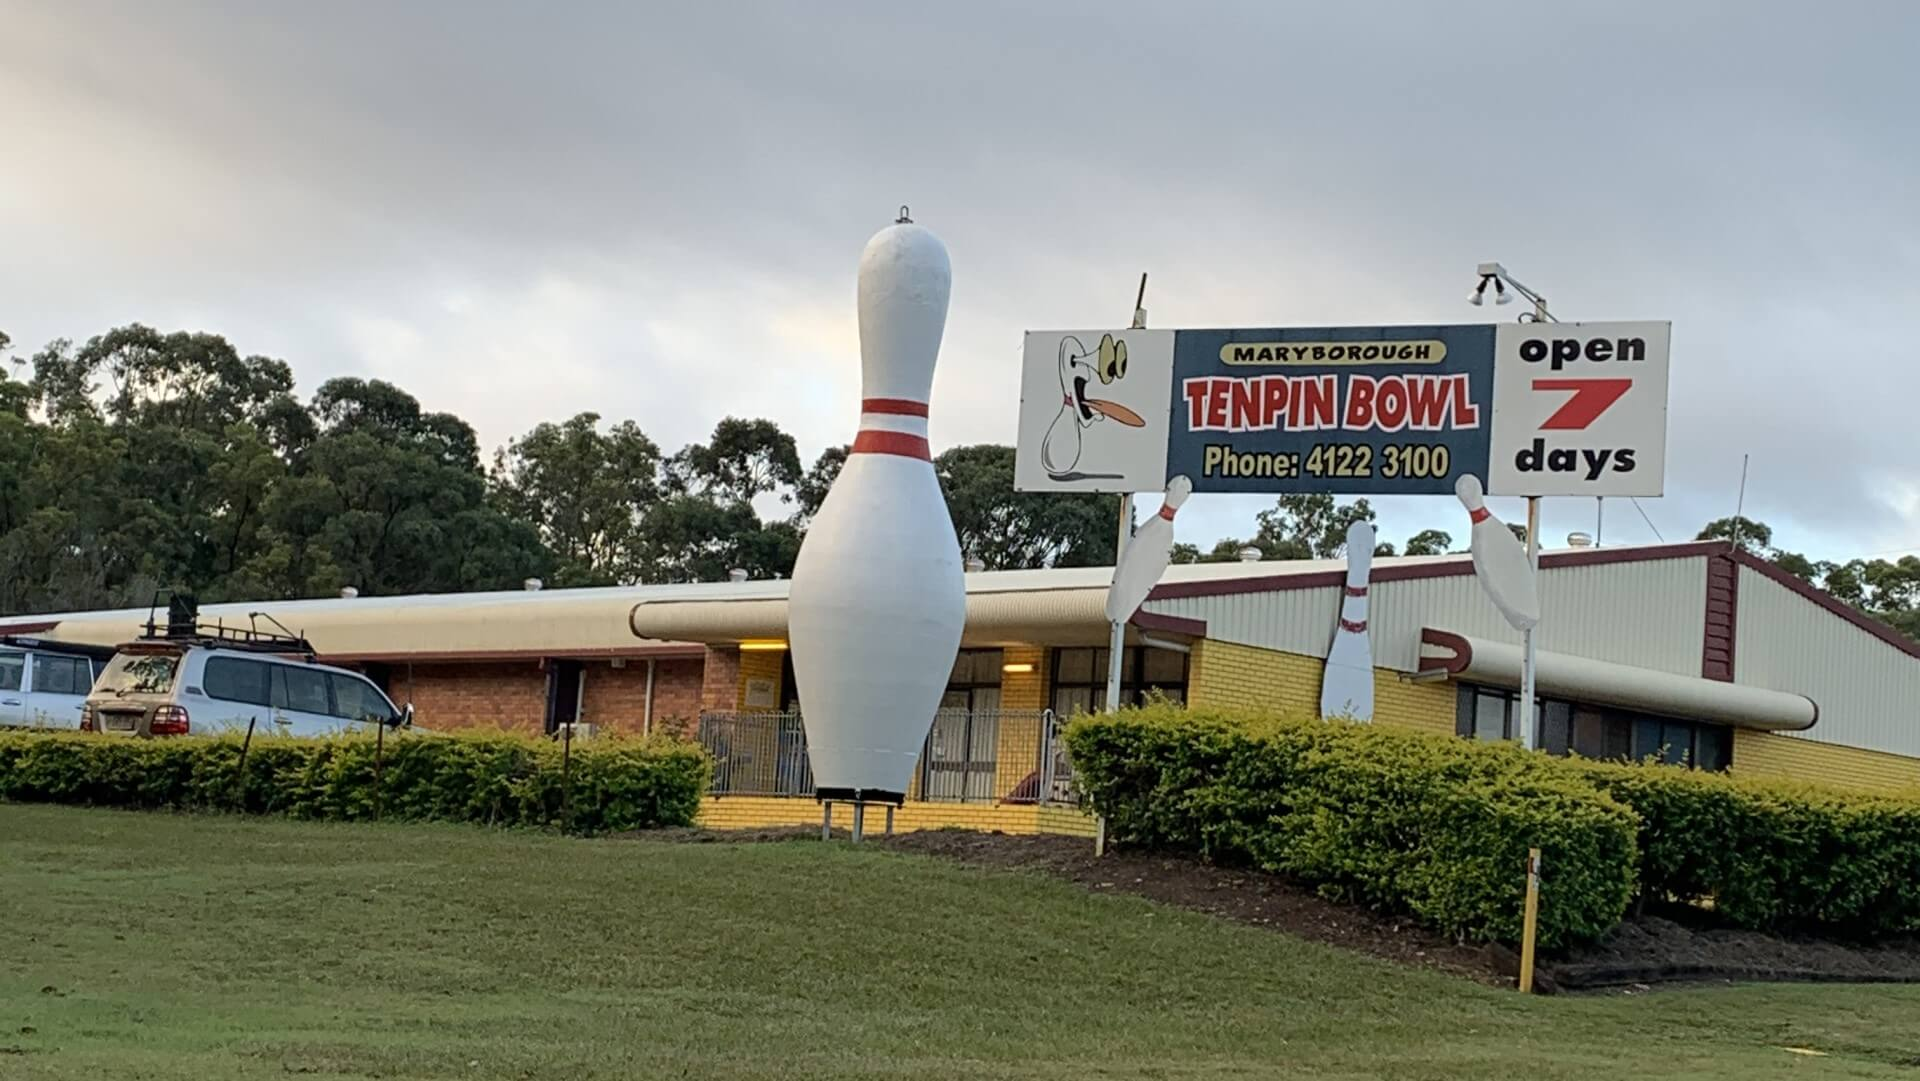 Big Bowling Pin in Maryborough Queensland